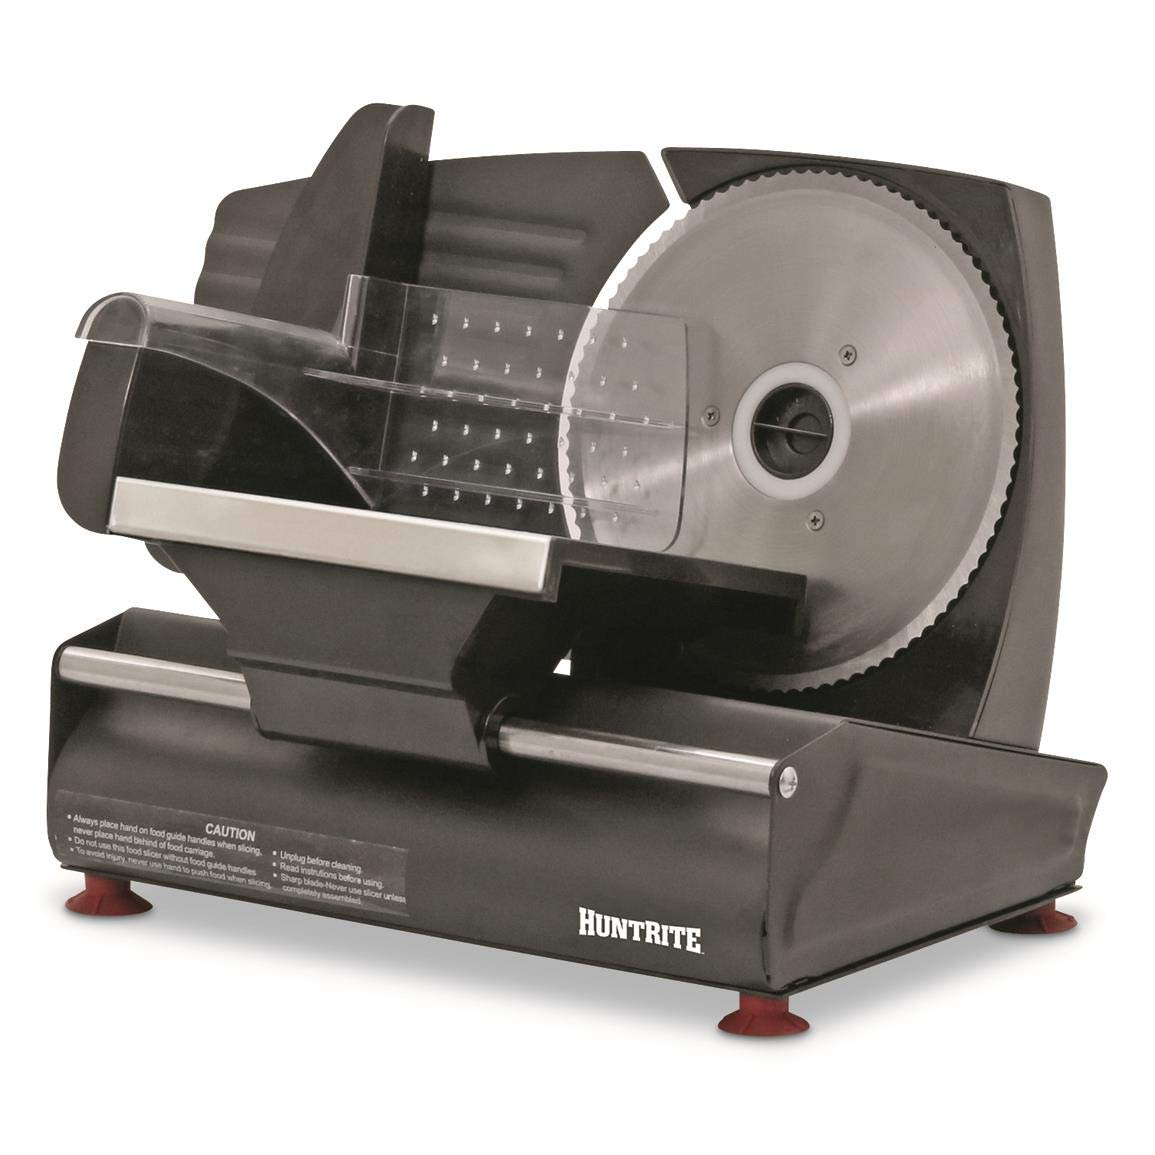 HuntRite 7.5'' Electric Meat Slicer by Huntrite (Image #1)